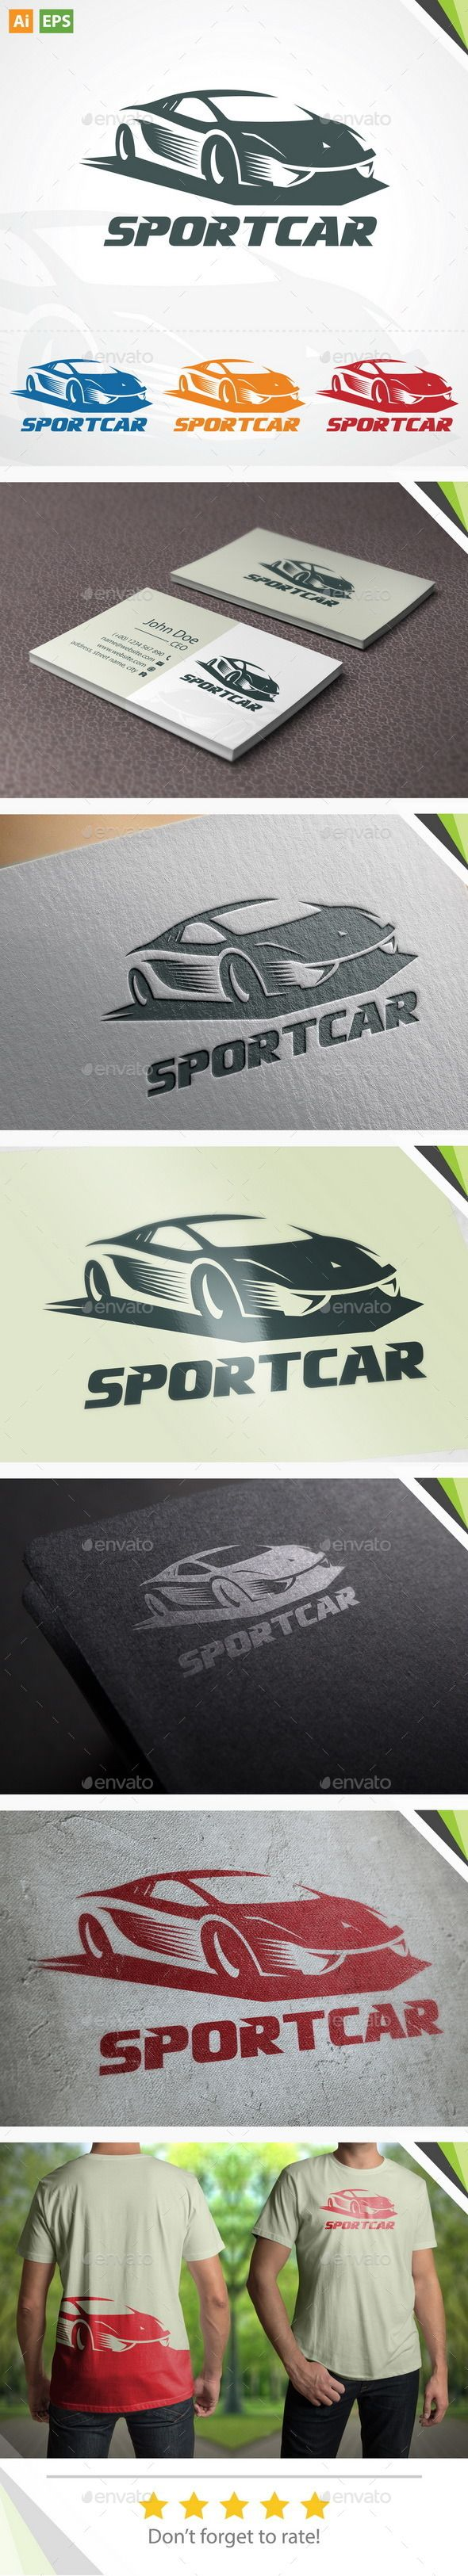 Sport Car Logo — Vector EPS #design #car • Available here → https://graphicriver.net/item/sport-car-logo/11309504?ref=pxcr